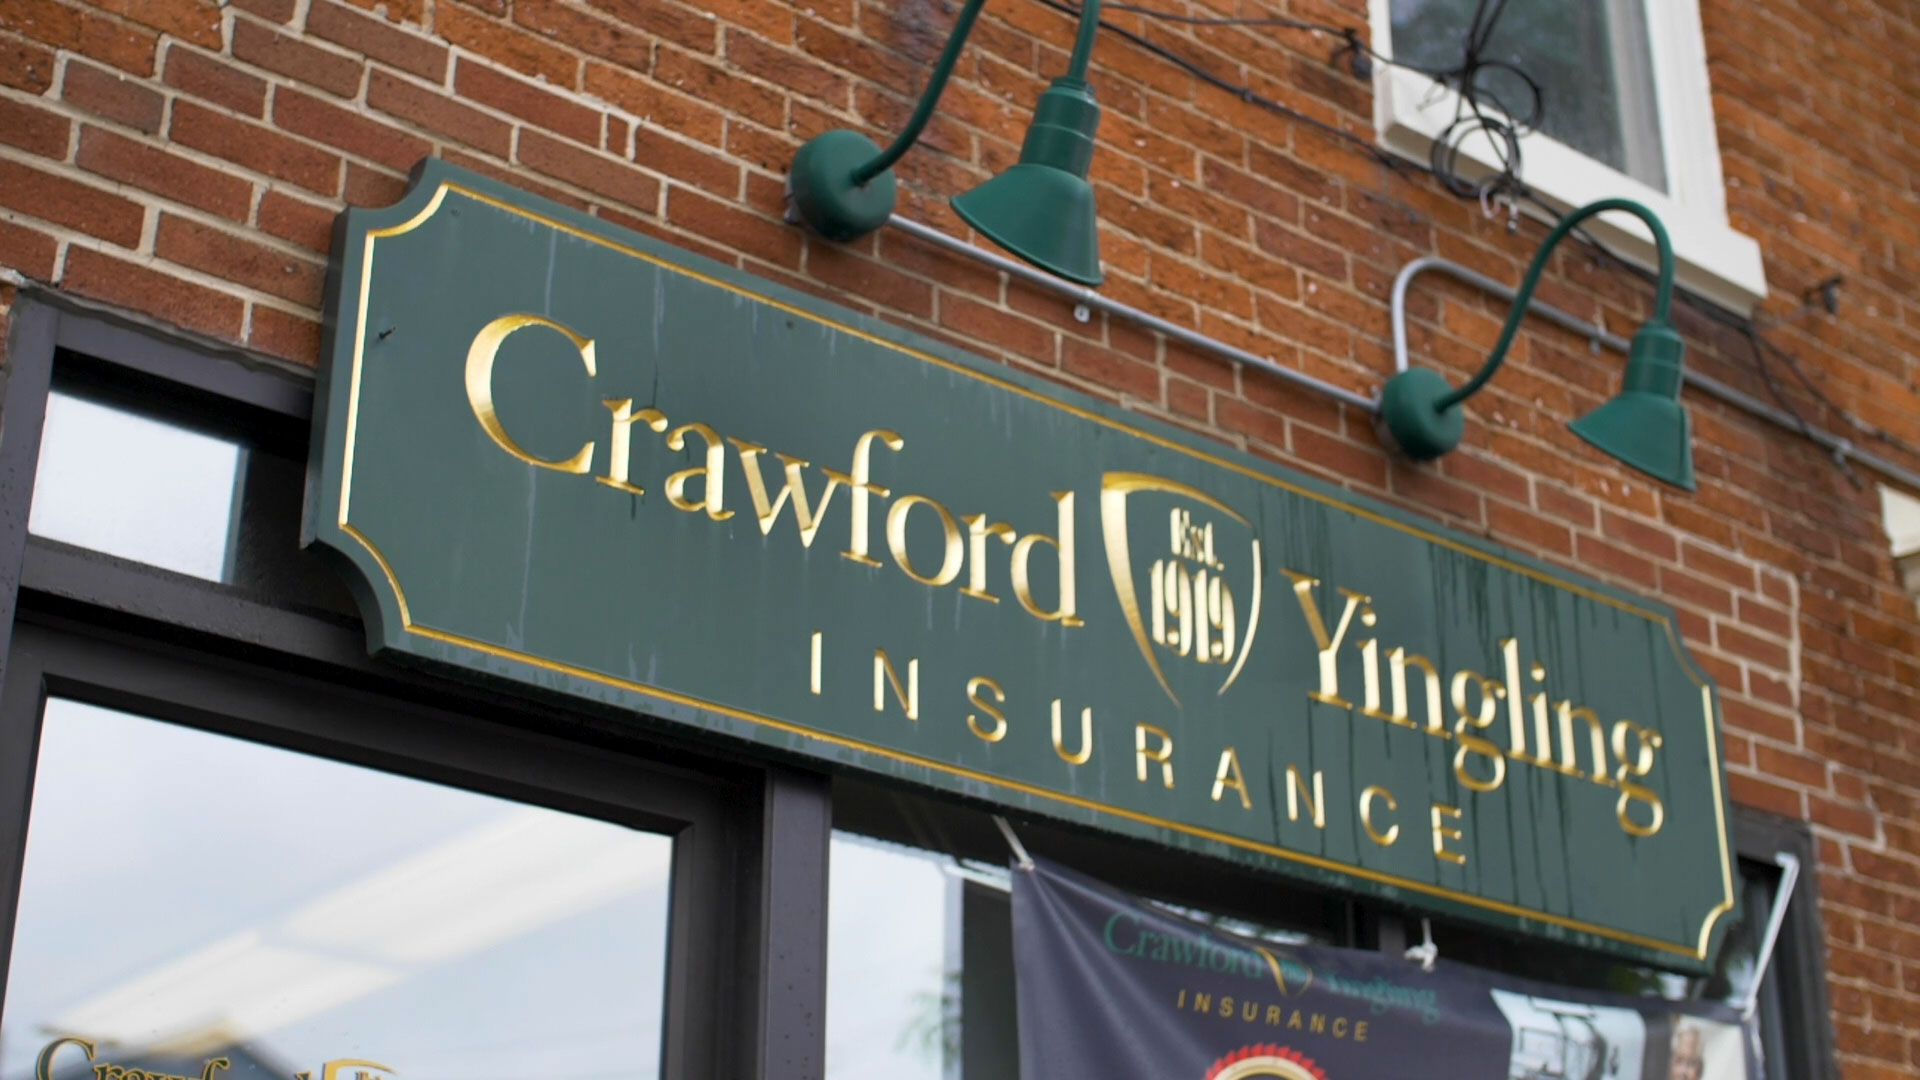 crawford-yingling-insurance-store-front-sign-green-gold